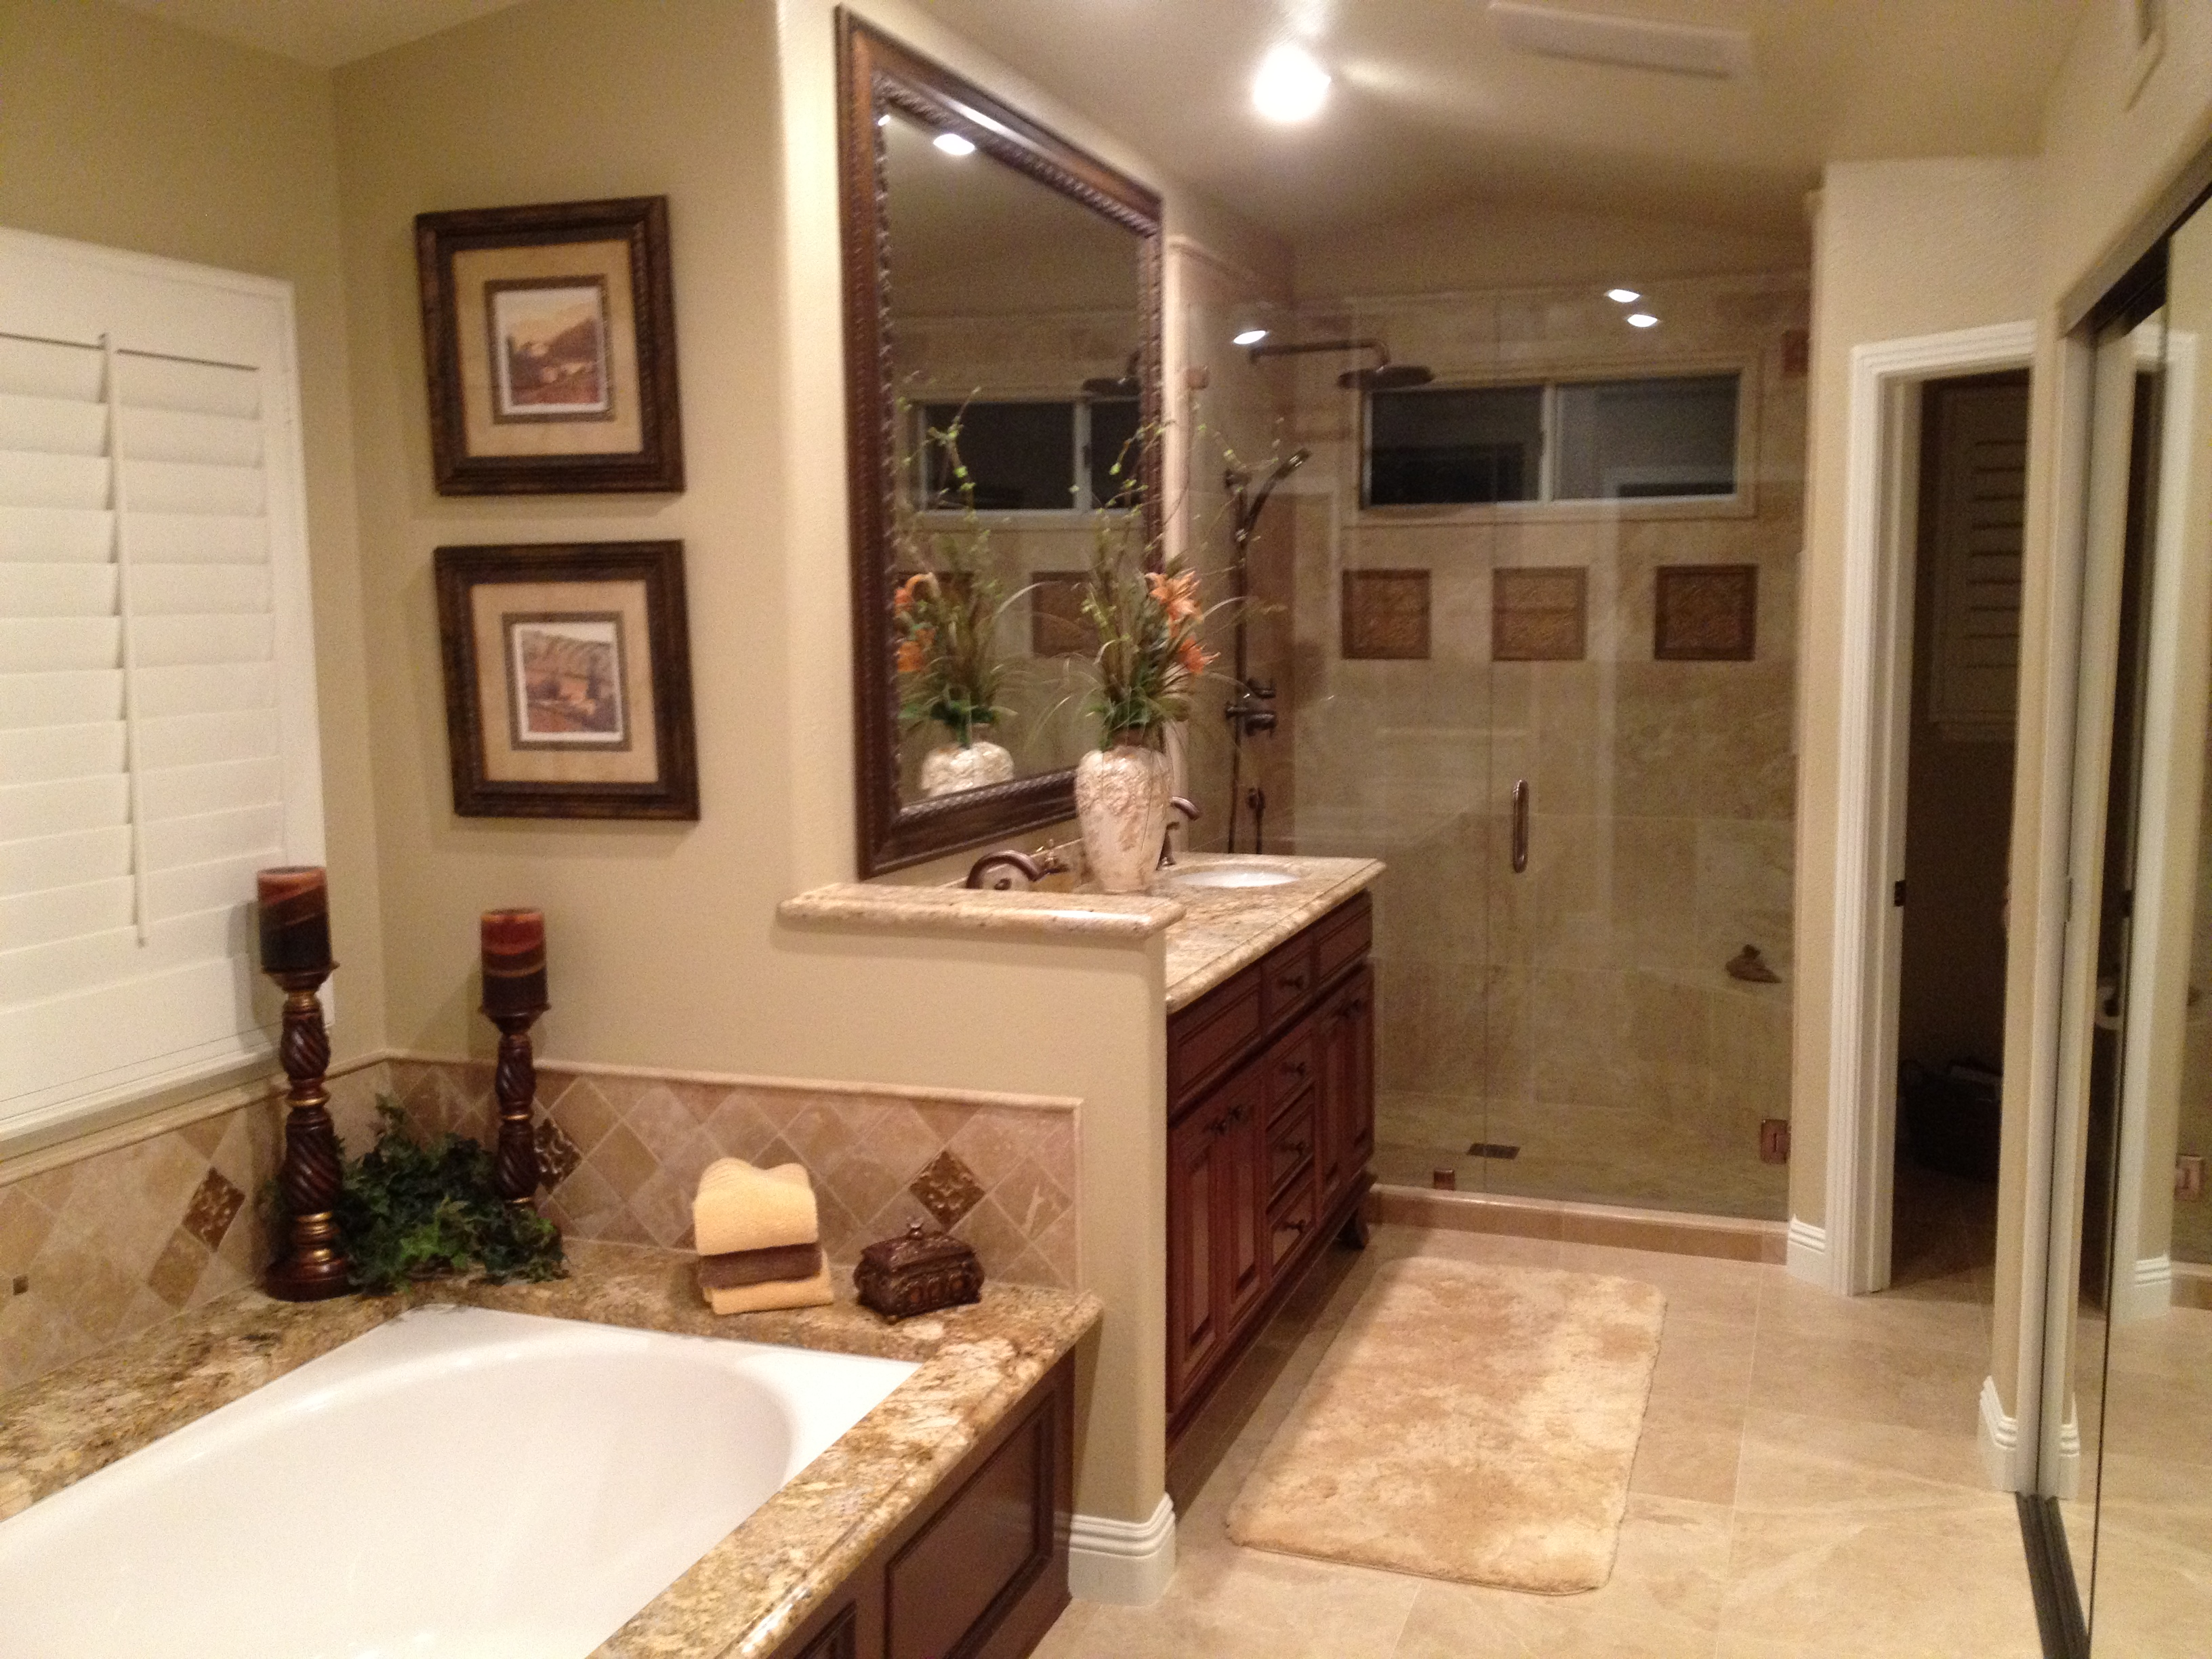 remodels money where bathroom does for on r spend cost contractors a remodel is your go homeadvisor spent